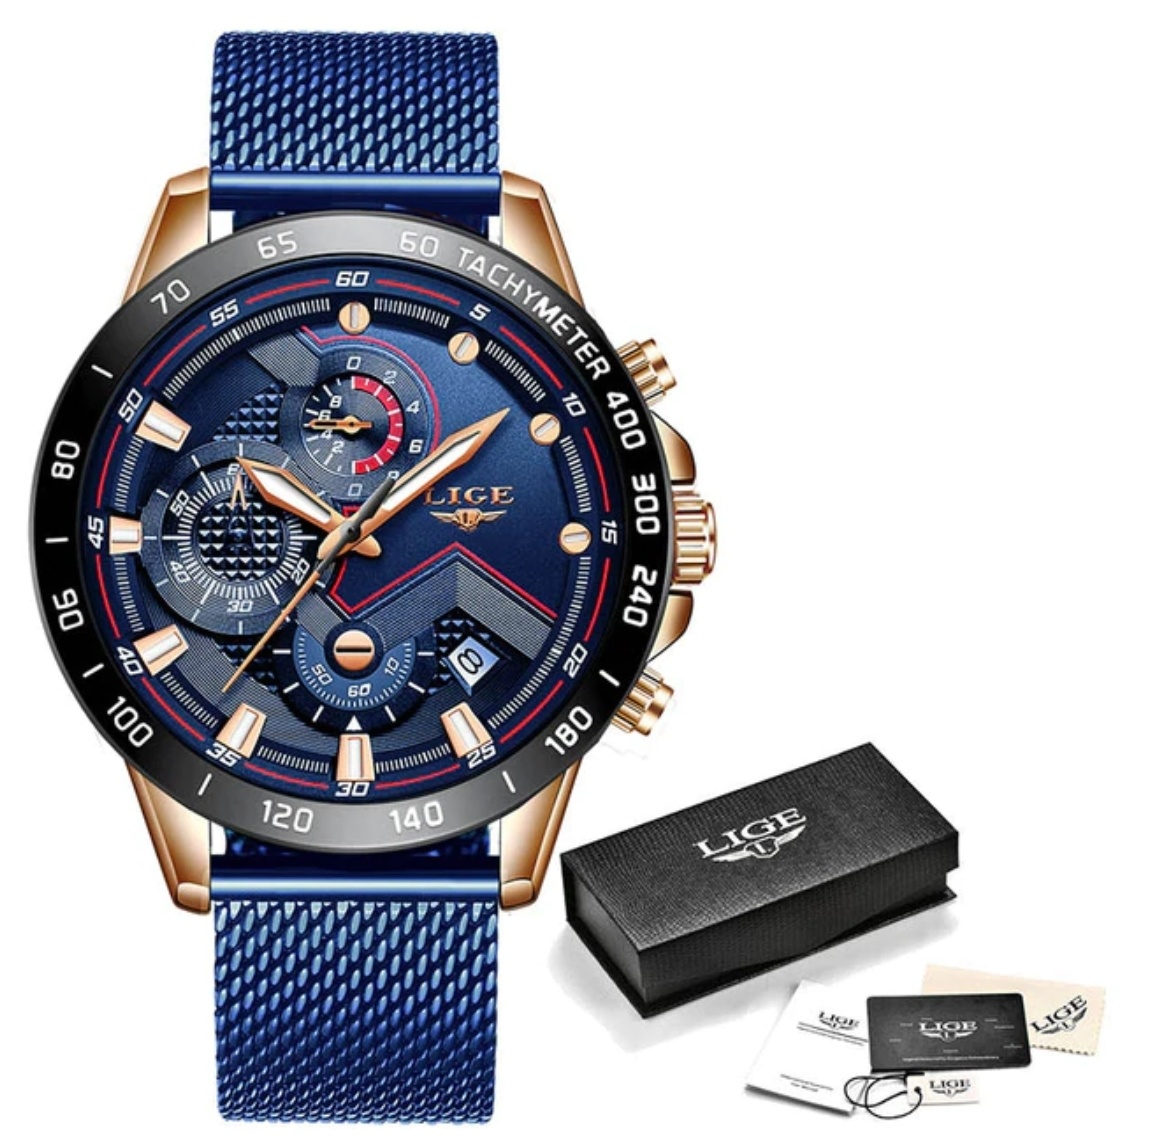 Quartz Watch - Anologue Luxury Movement for Men - Stainless Steel - Blue-Black